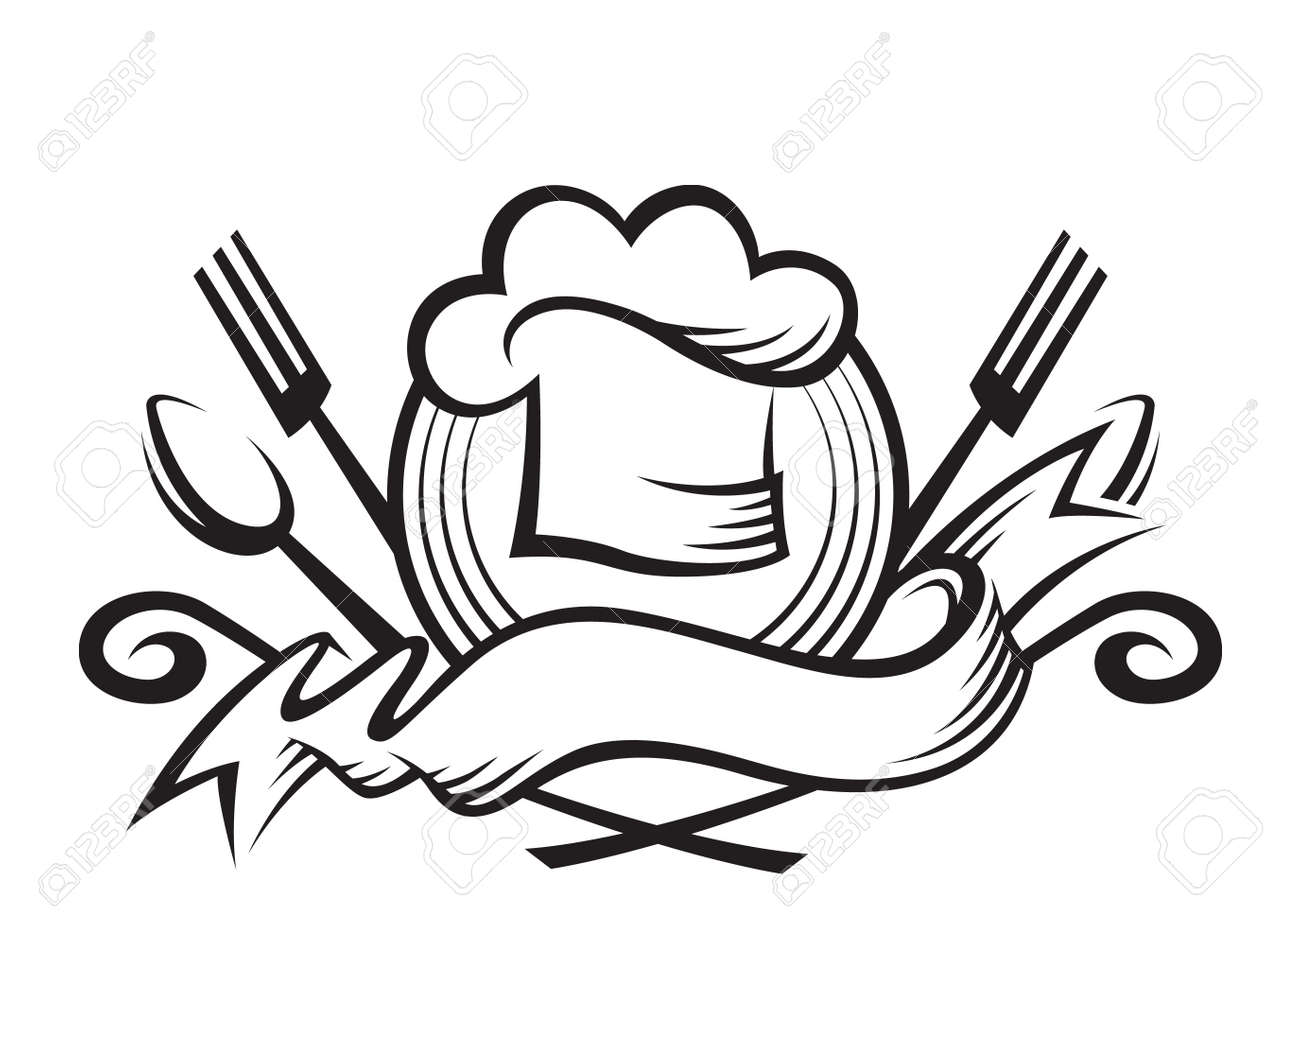 monochrome illustration of a chef hat with spoon, fork and ribbon - 50096921